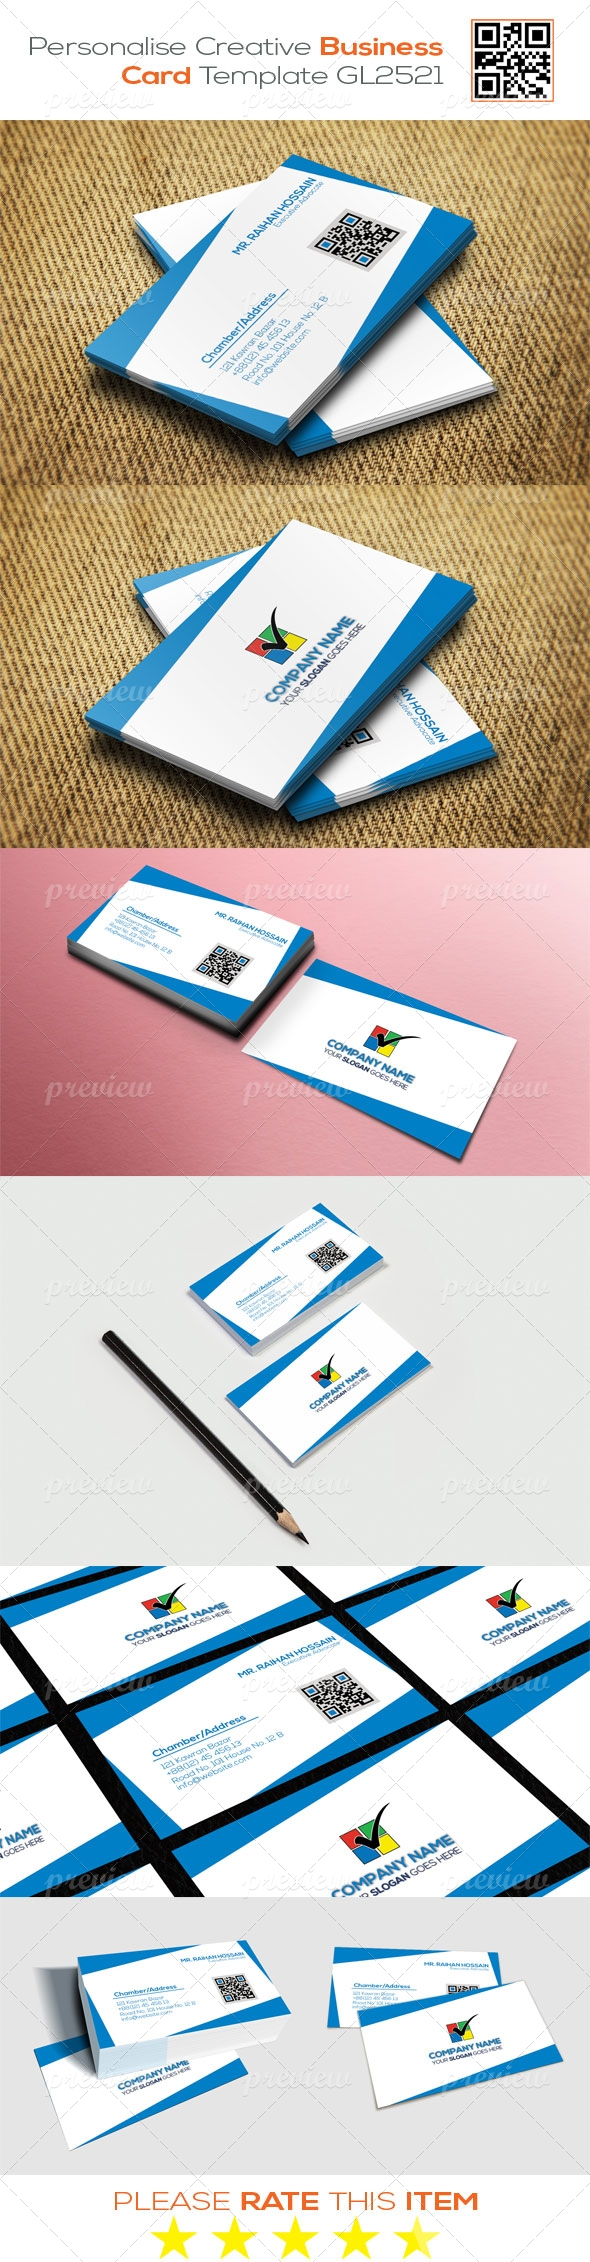 Personalize Creative Business Card Template GL2521